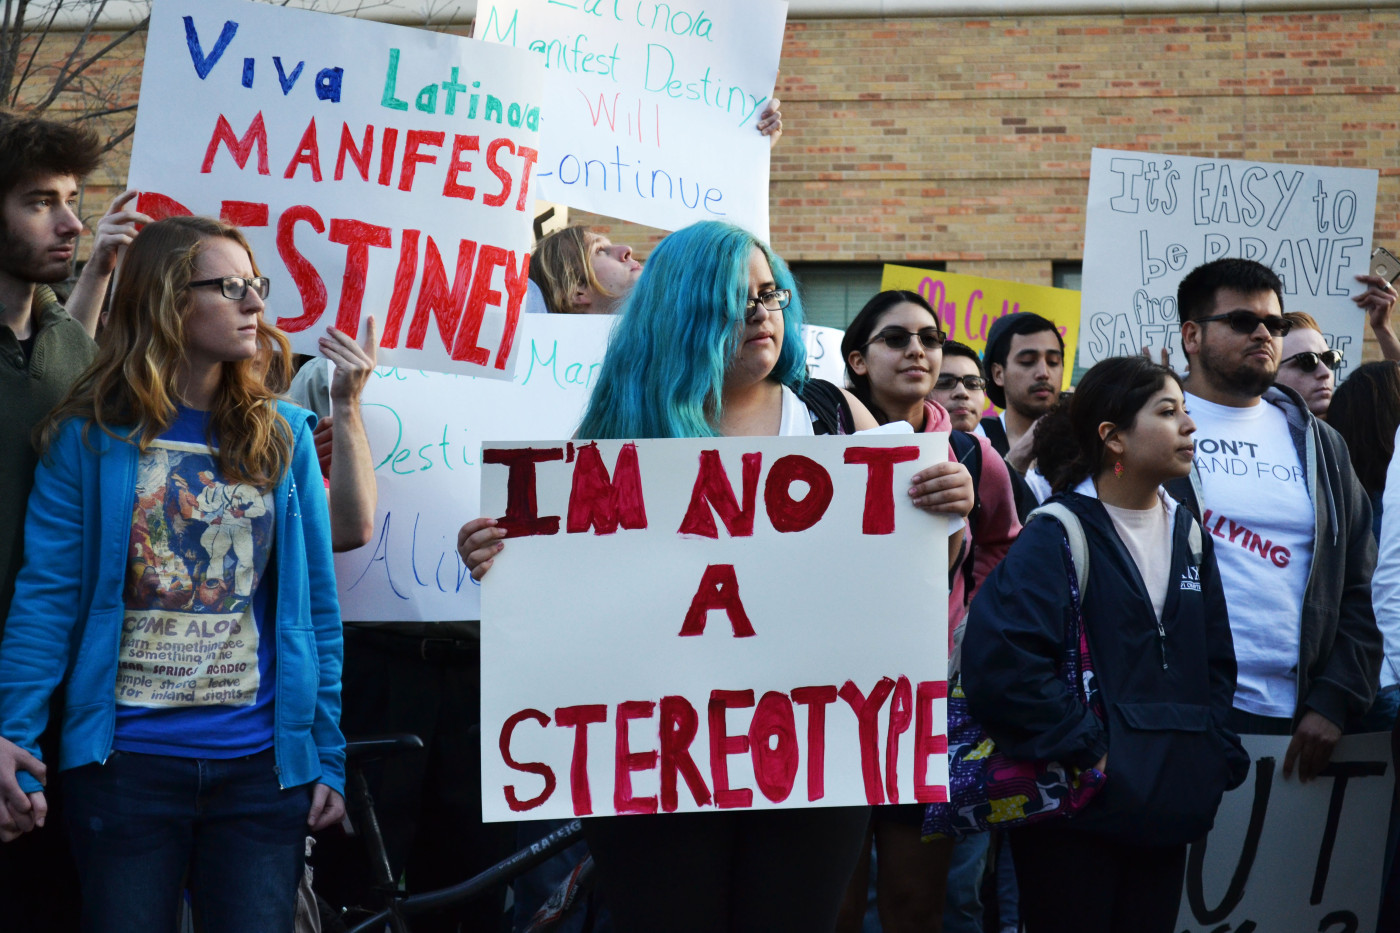 Nadia Flores, second year undeclared, stands in front of the Phi Gamma Delta (FIJI) fraternity house in Austin, Texas on February 12, 2015. She participated in the United Against Racism March in order to bring attention to University administrators that the party FIJI had affected her culture in a negative way.